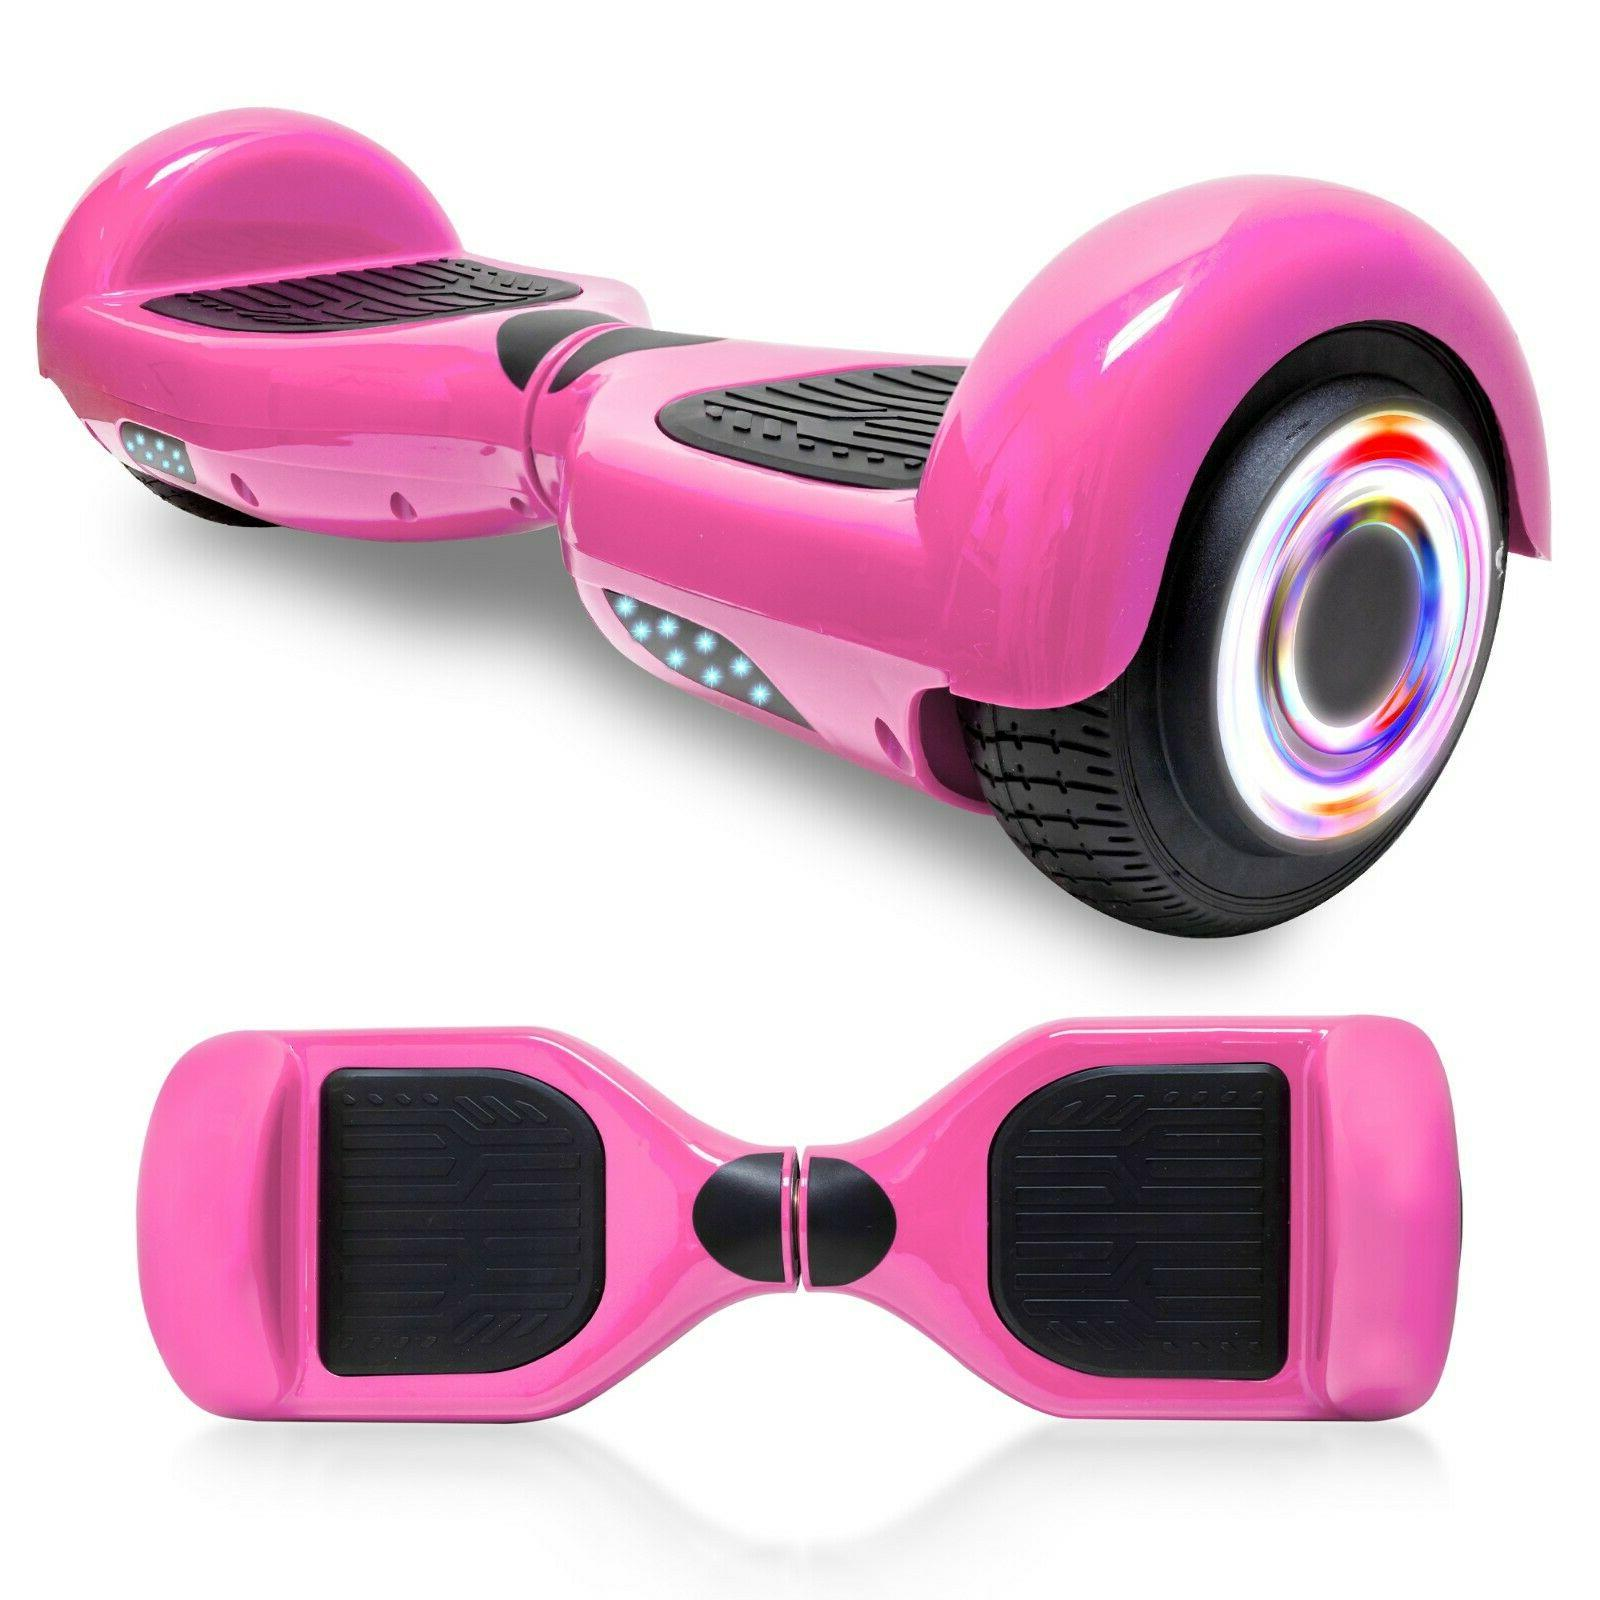 NHT 6.5 Two Hoverboard Design